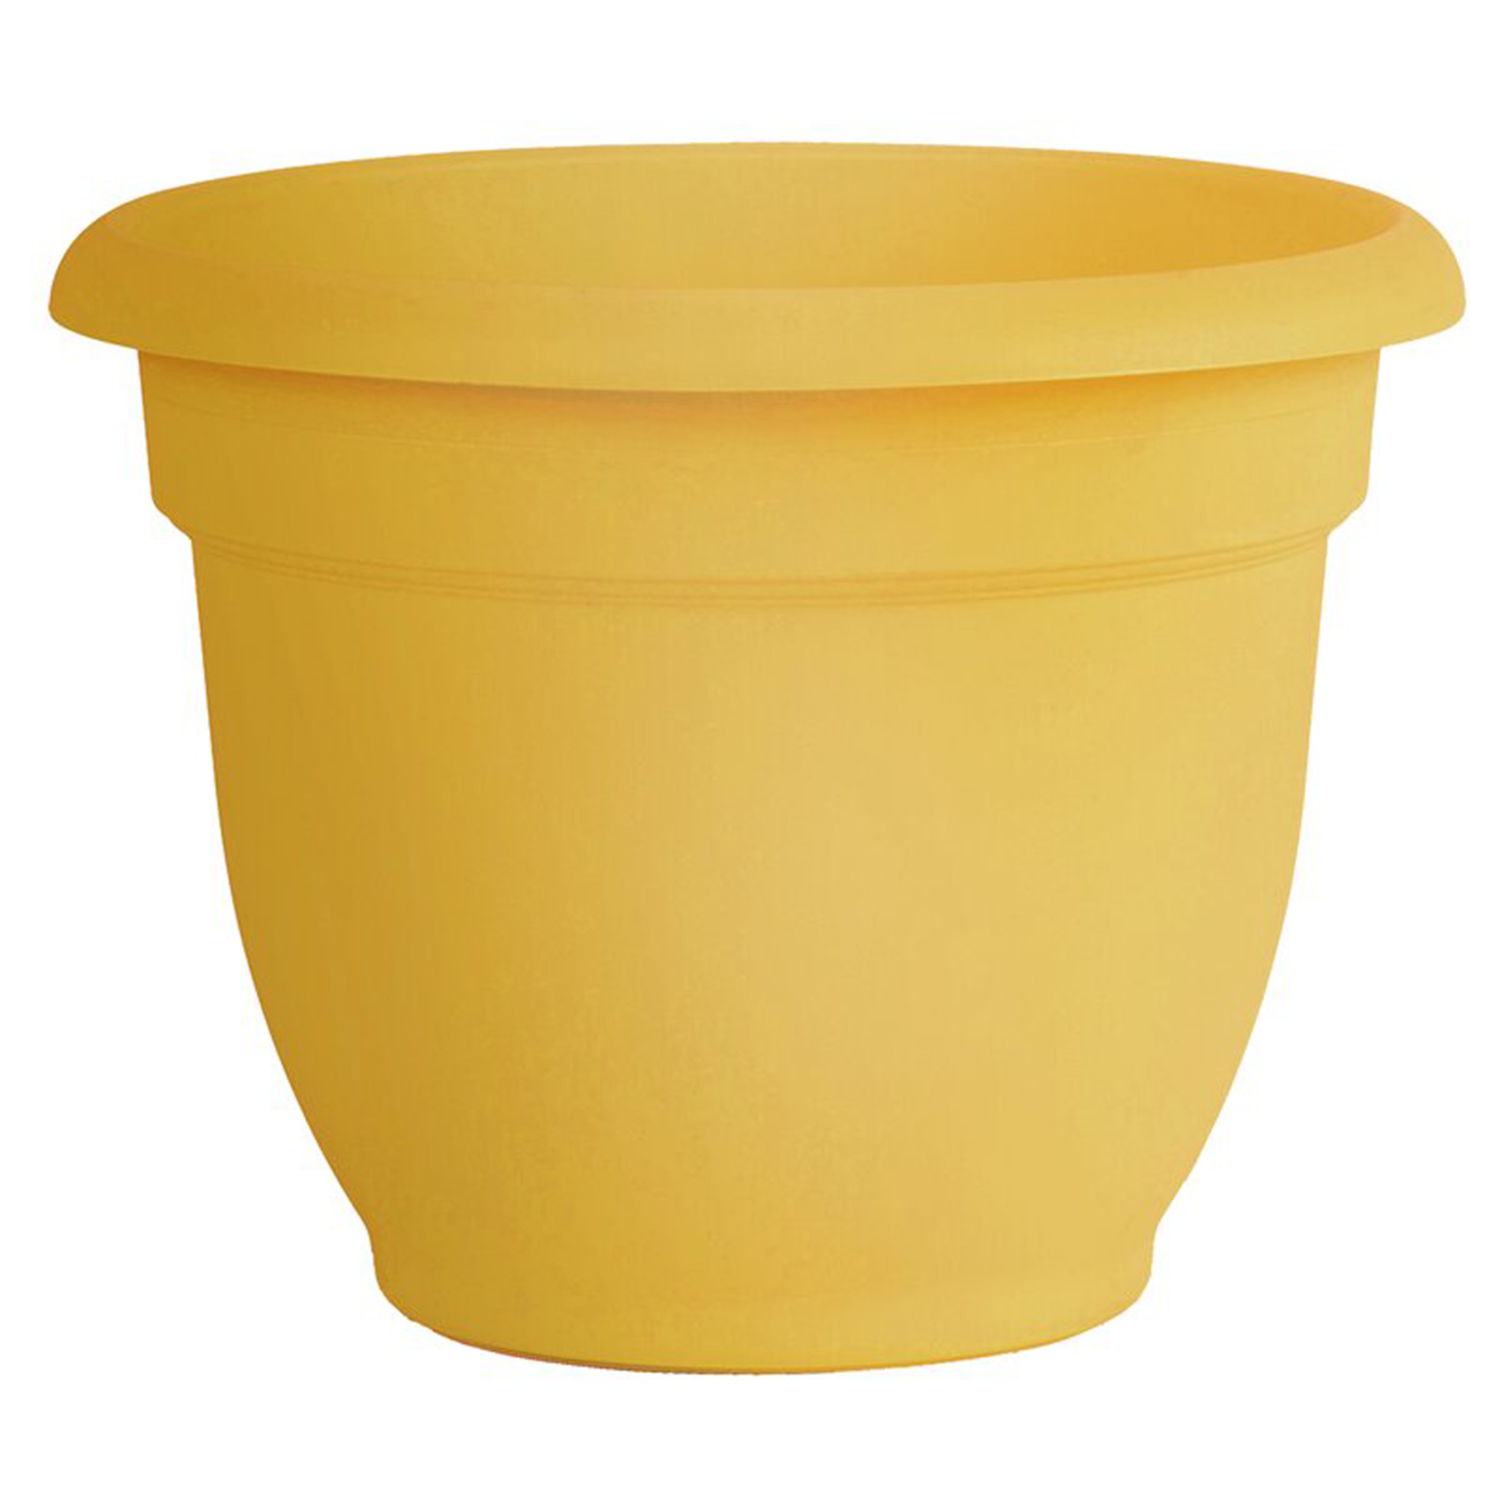 Cordeiro Self-Watering Polypropylene Pot Planter